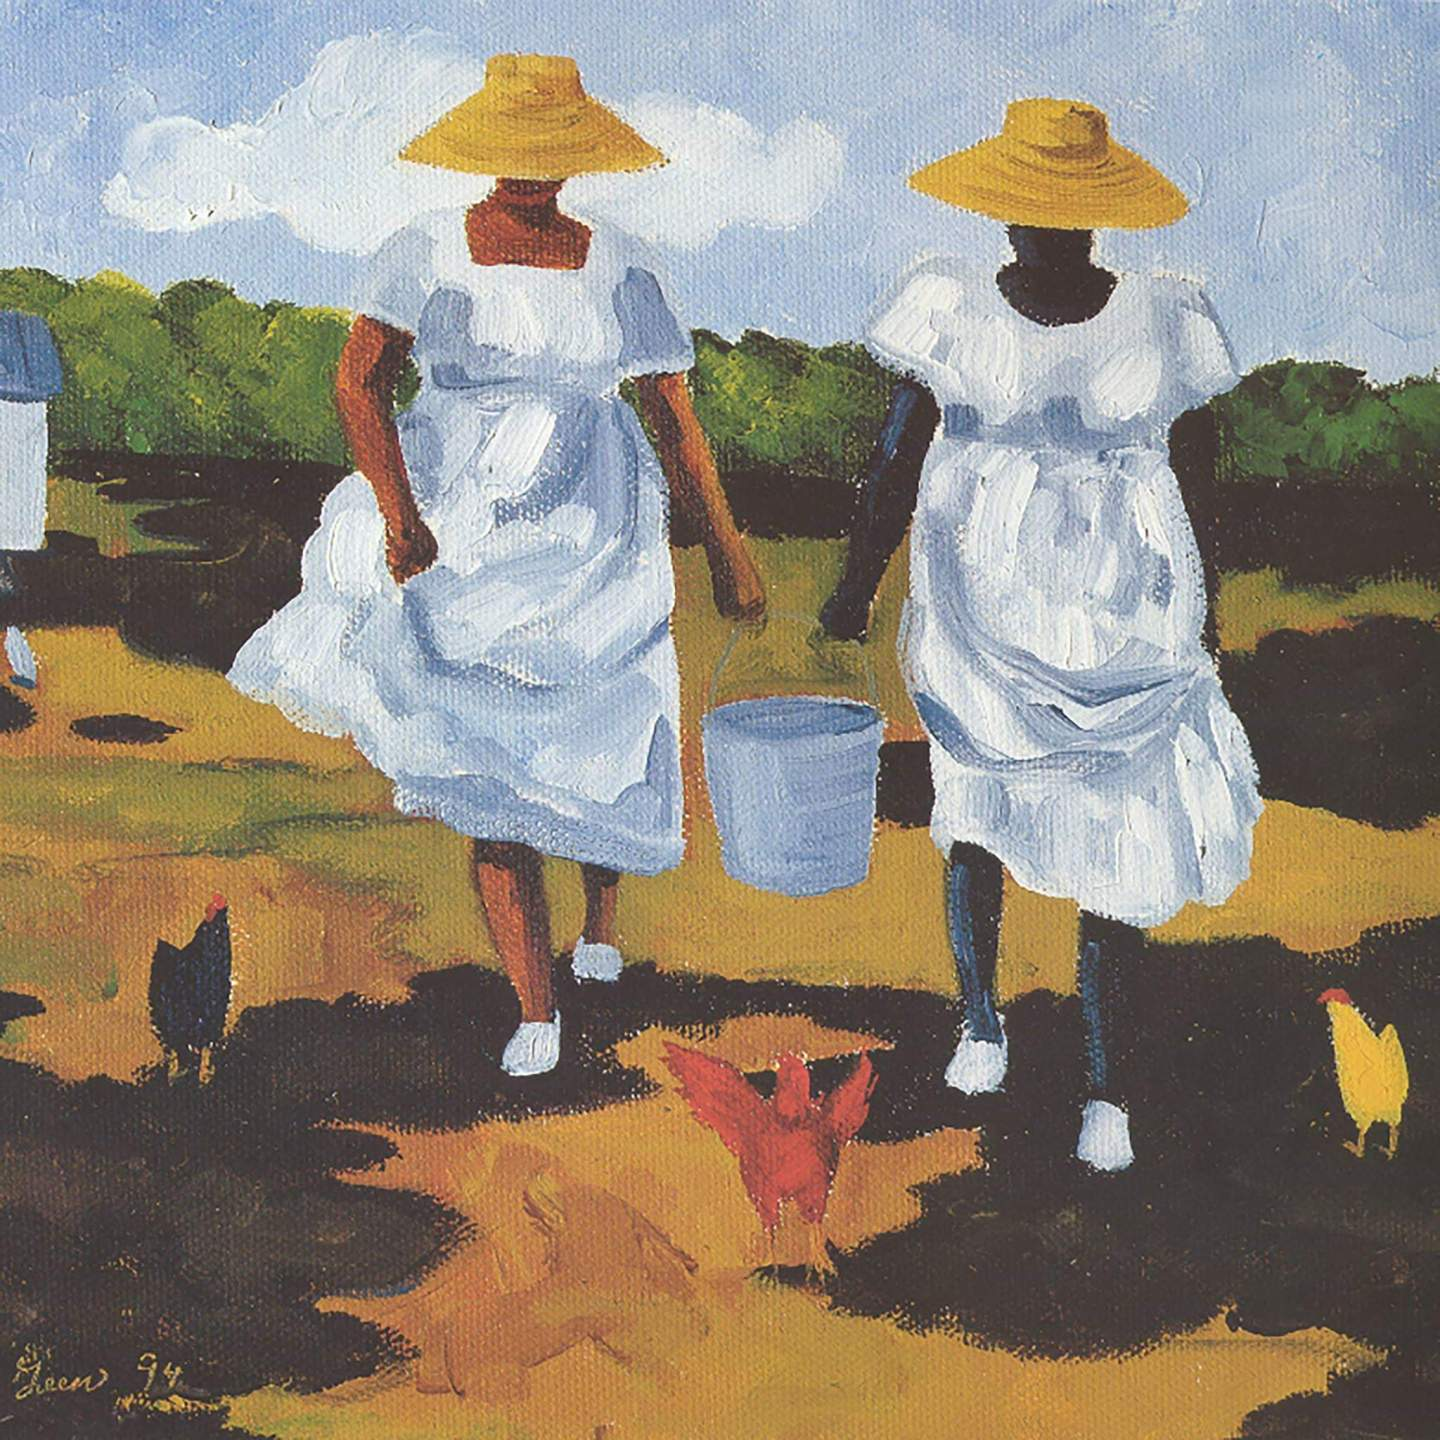 Sharing the Chores: Exhibit Explores the work of Jonathan Green